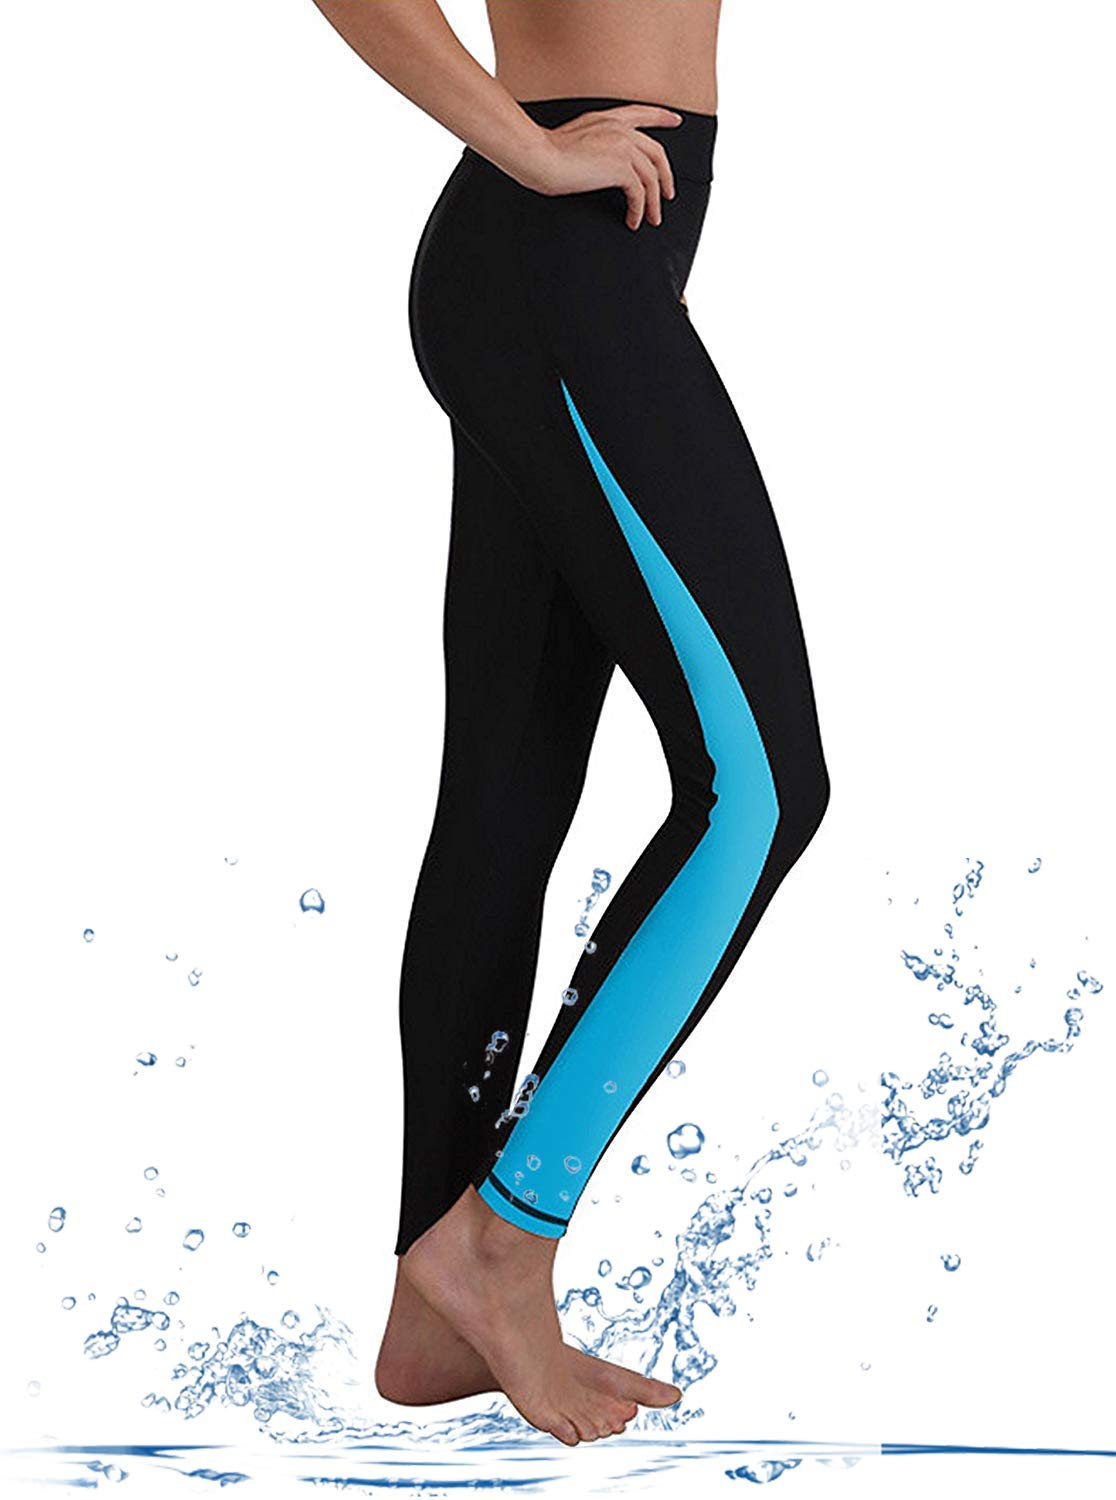 GEEK LIGHTING Womens Wetsuit Pants UV Protective Surfing Board Diving Canoe Pants Aqua Small